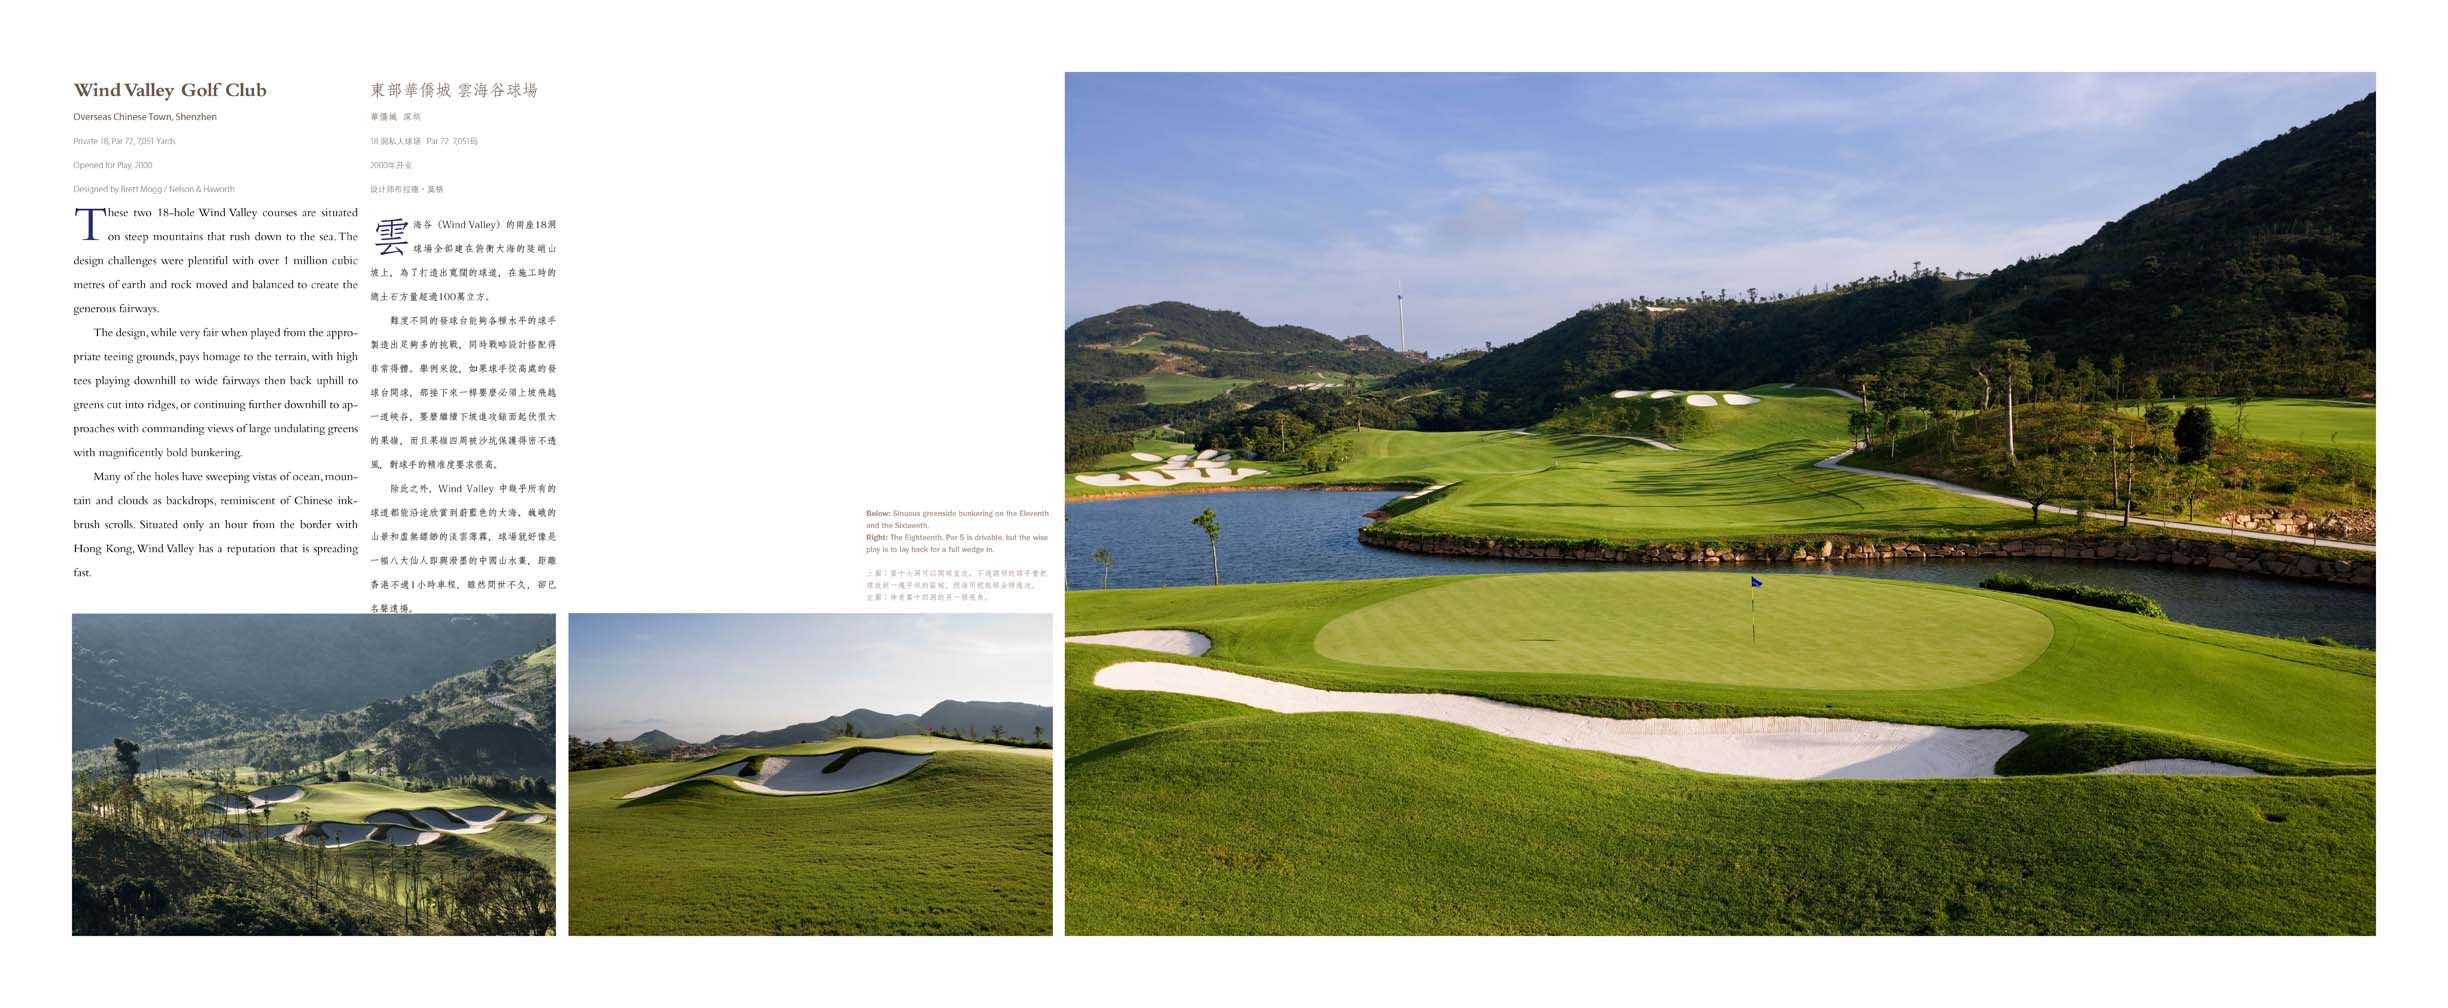 Sample Page From The Great Golf Courses of China